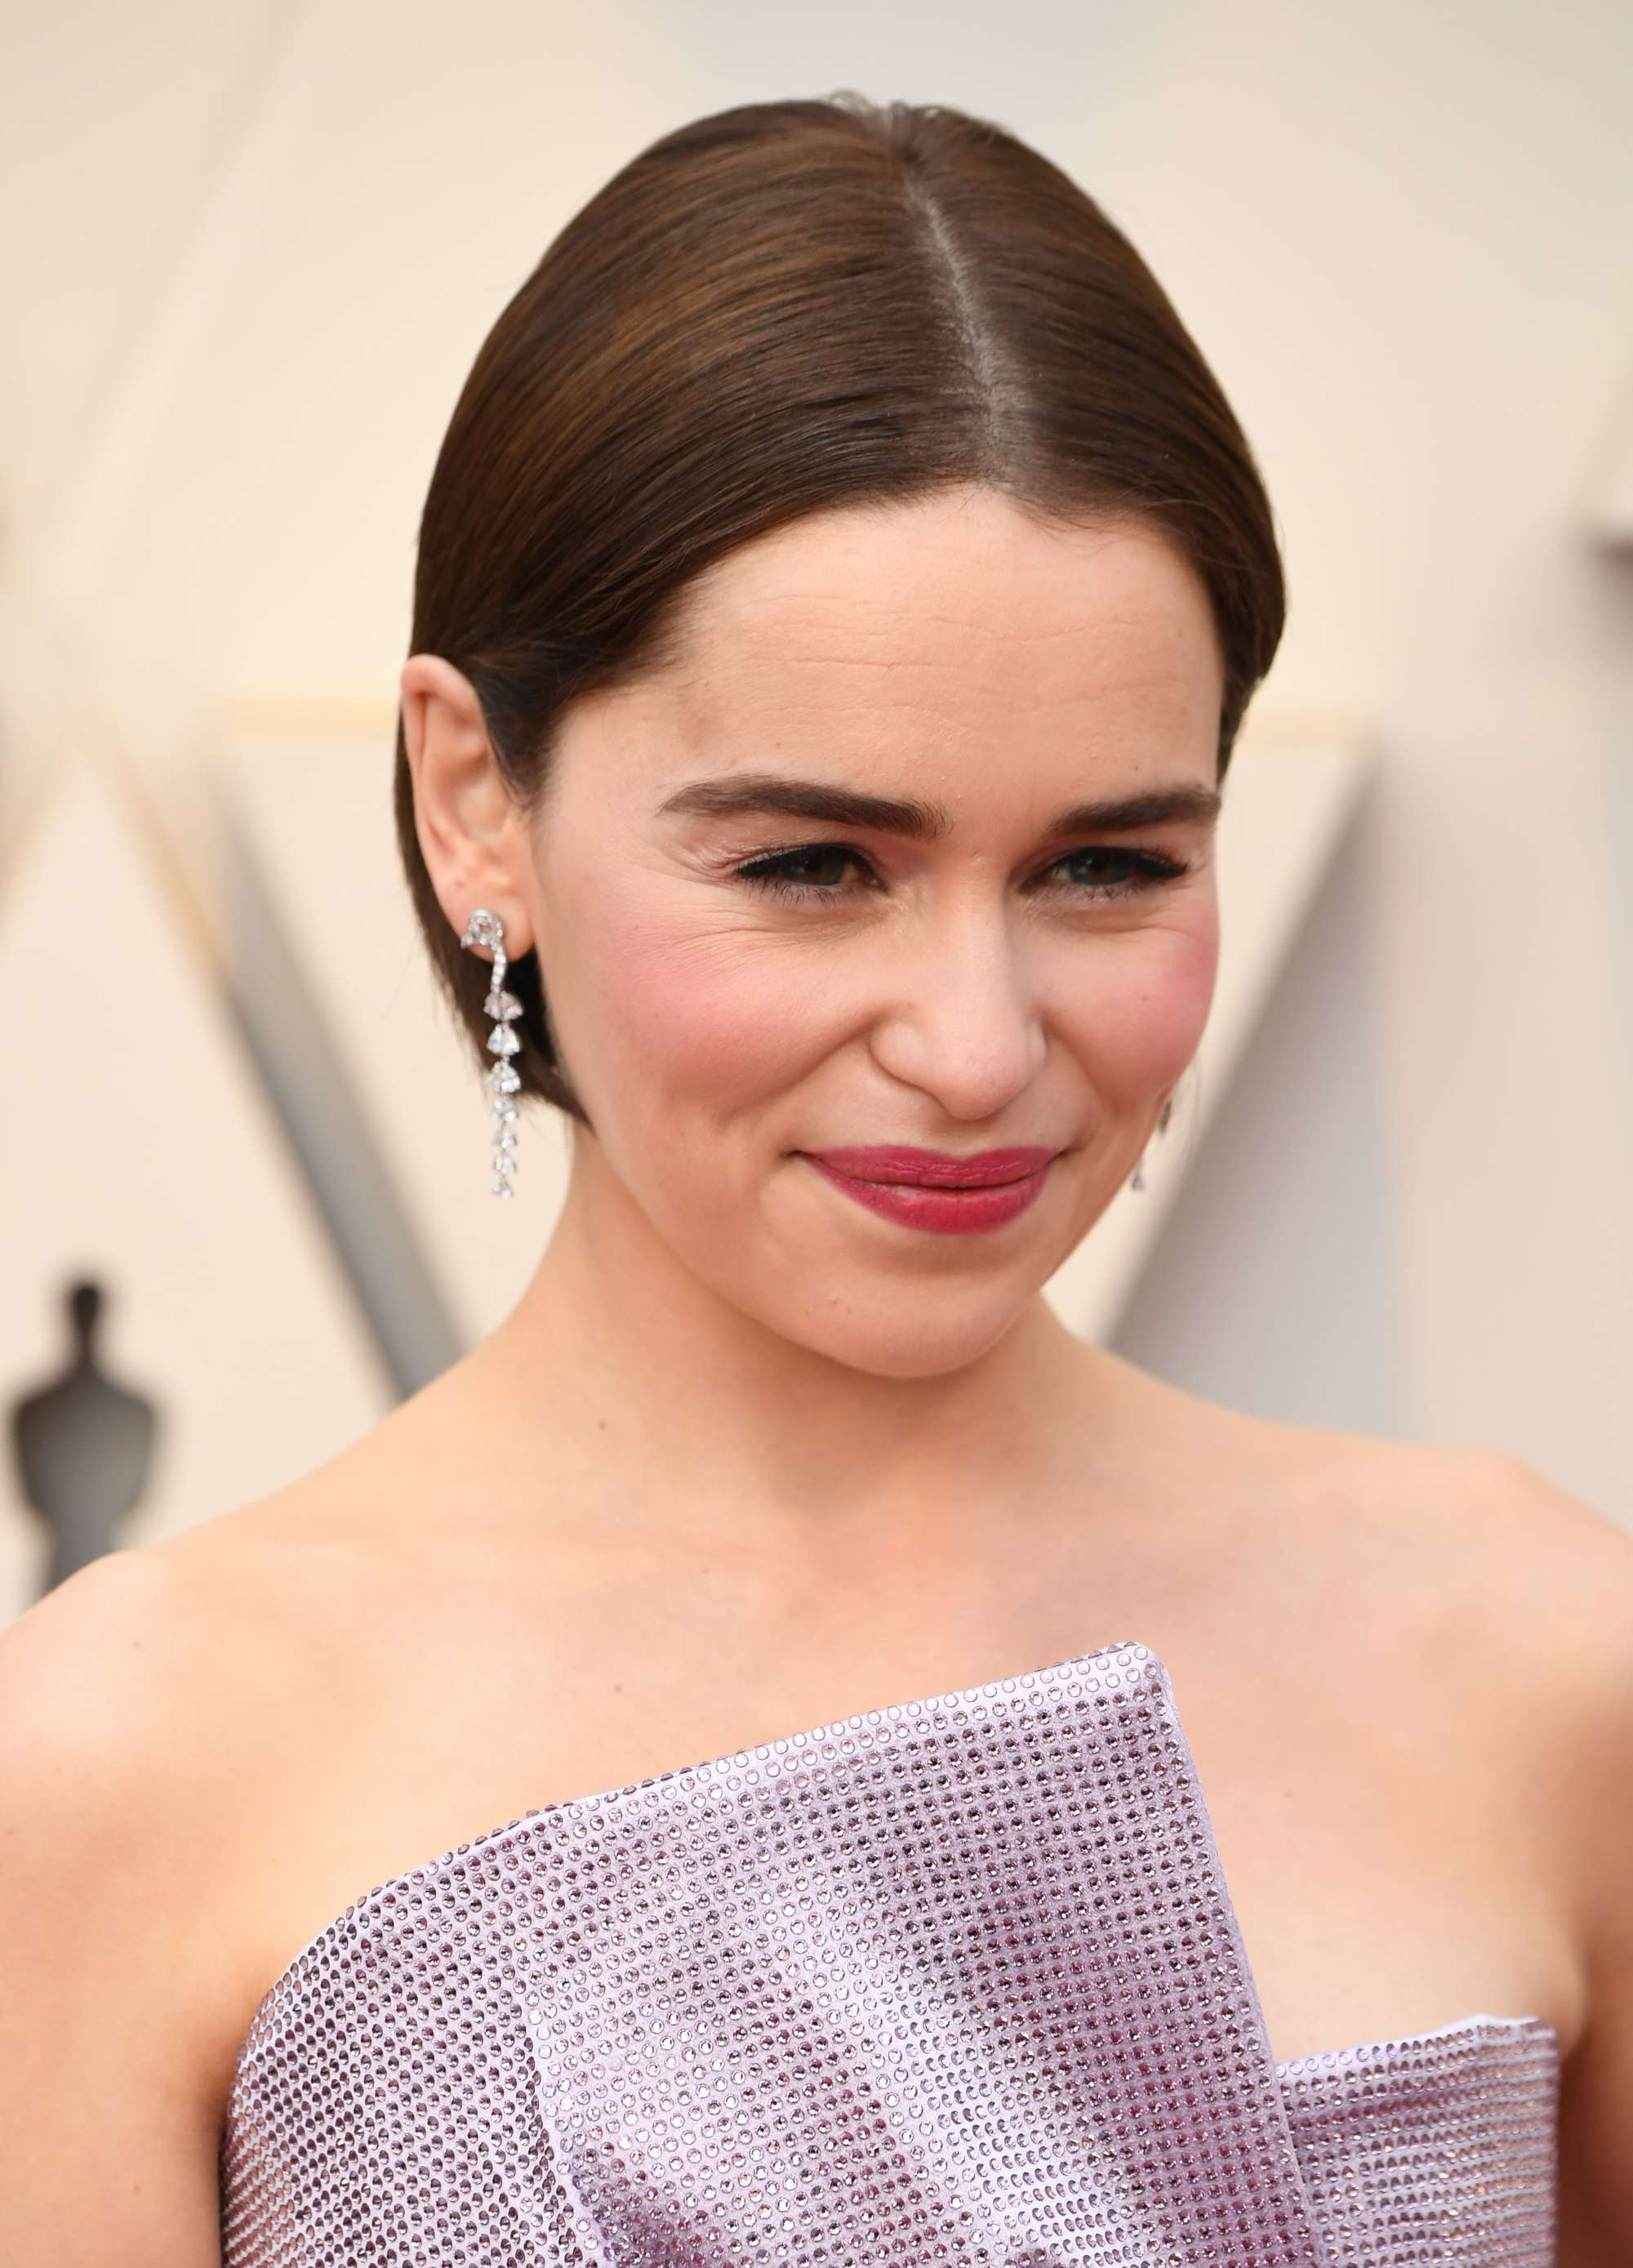 Oscars 2019 hairstyles: Emilia Clarke at the 2019 Oscars with a dark brown sleek short bob